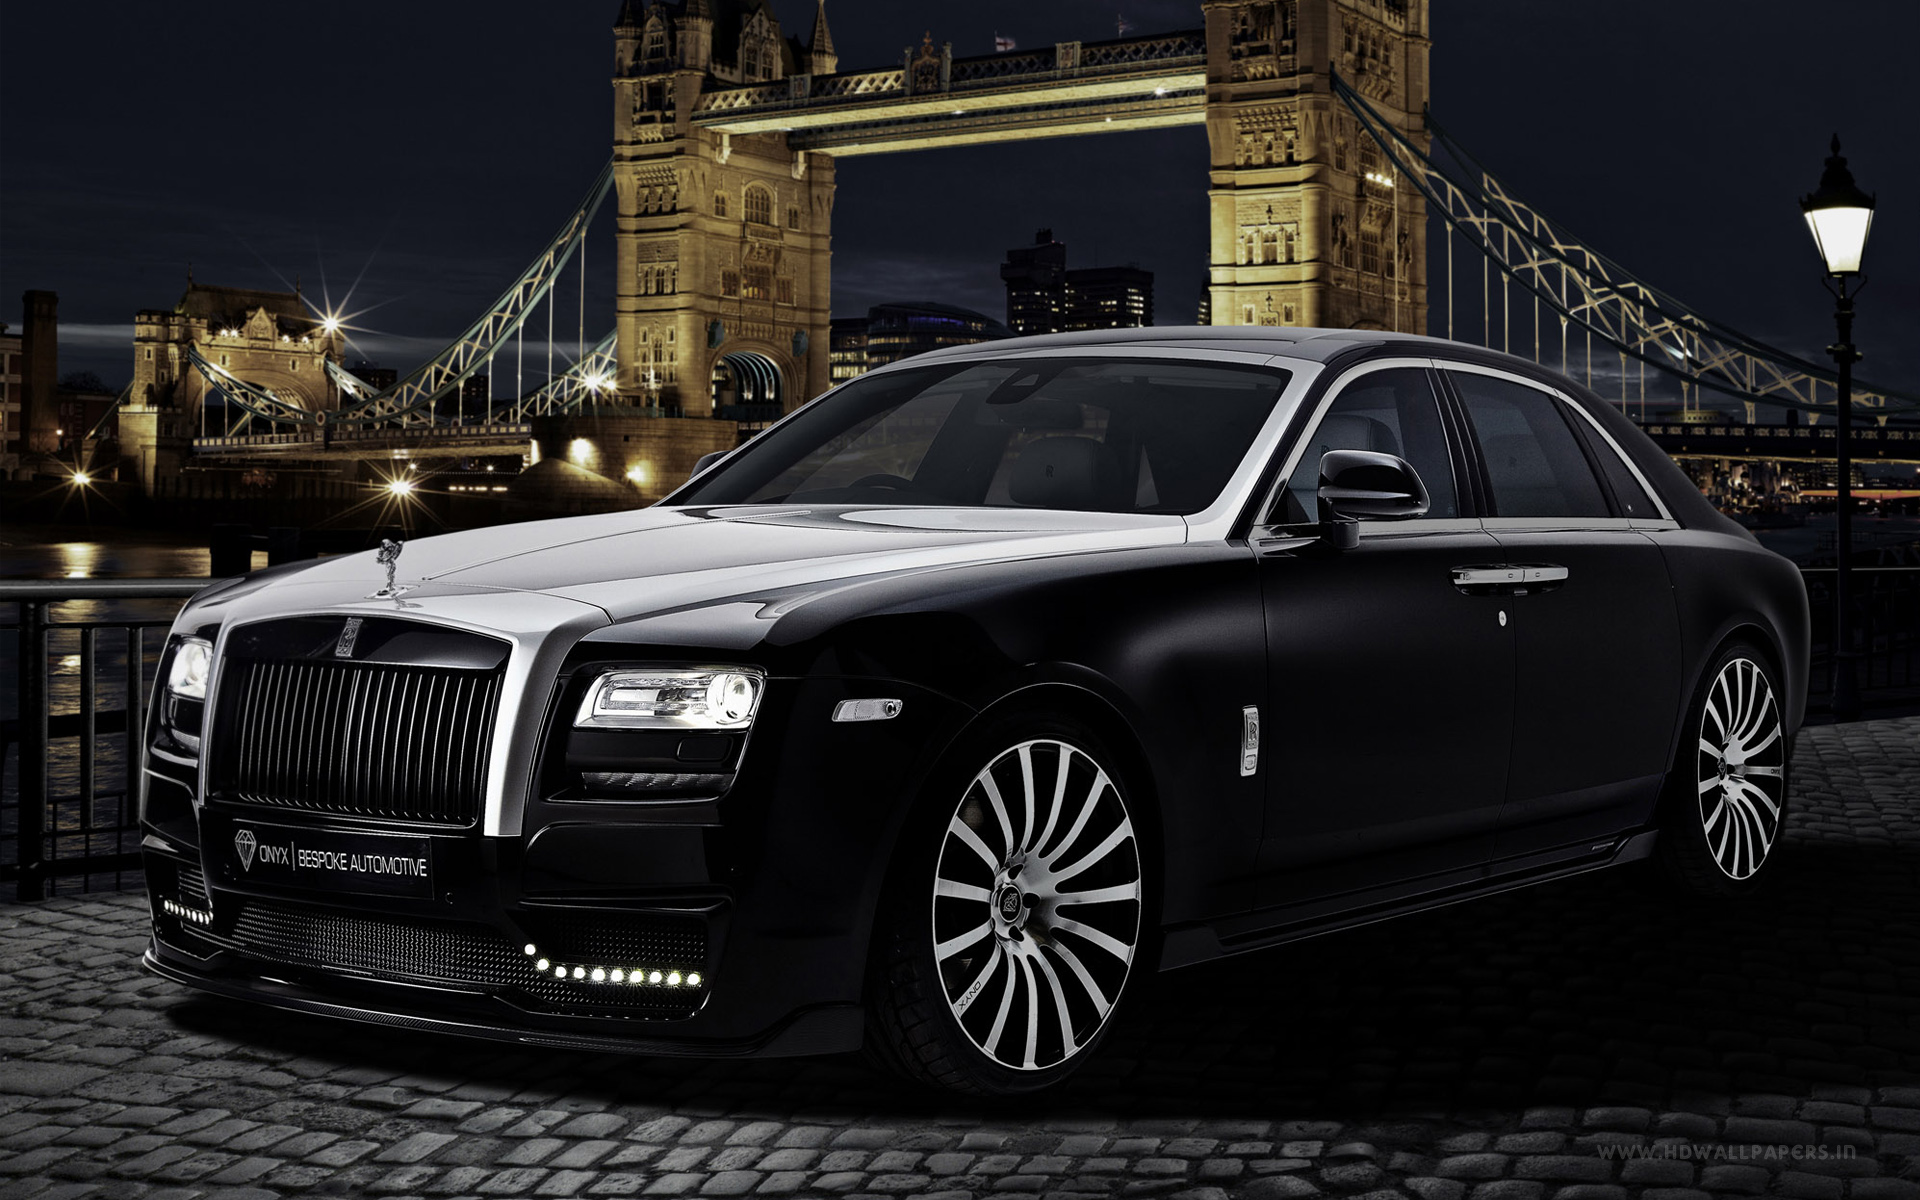 2015 onyx rolls royce ghost san mortiz wallpaper hd car wallpapers id 5345. Black Bedroom Furniture Sets. Home Design Ideas